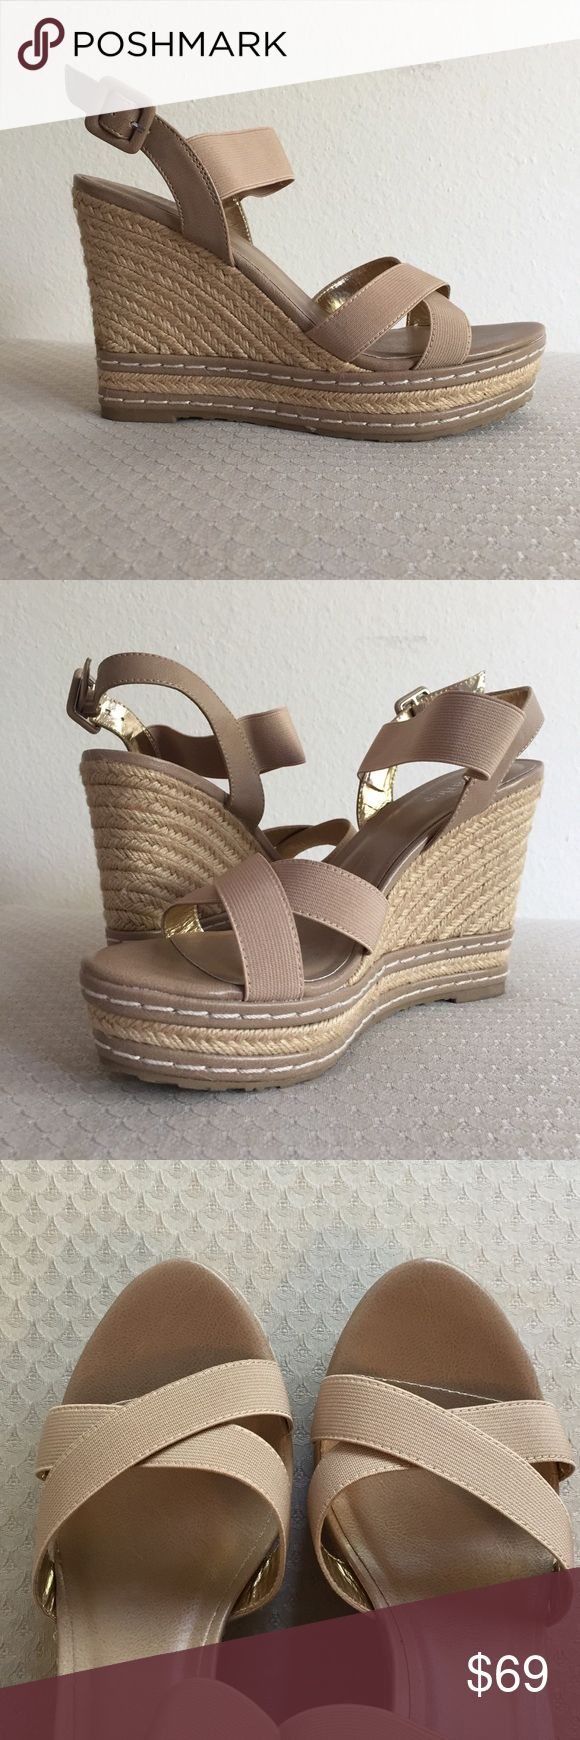 """✨✨NEW✨✨ NIB Charles by Charles David Wedge Sandal """"Thrice"""" style wedge sandal from charles by Charles David. The beige color and the 4.75"""" heel make these super leg-lengthening (and super versatile!), while the wedge shape and a 1.5"""" platform mean it's still super-walkable!  The straps are stretchy and adjustable at the ankle. Tried on on carpet but otherwise never worn!! Charles David Shoes"""